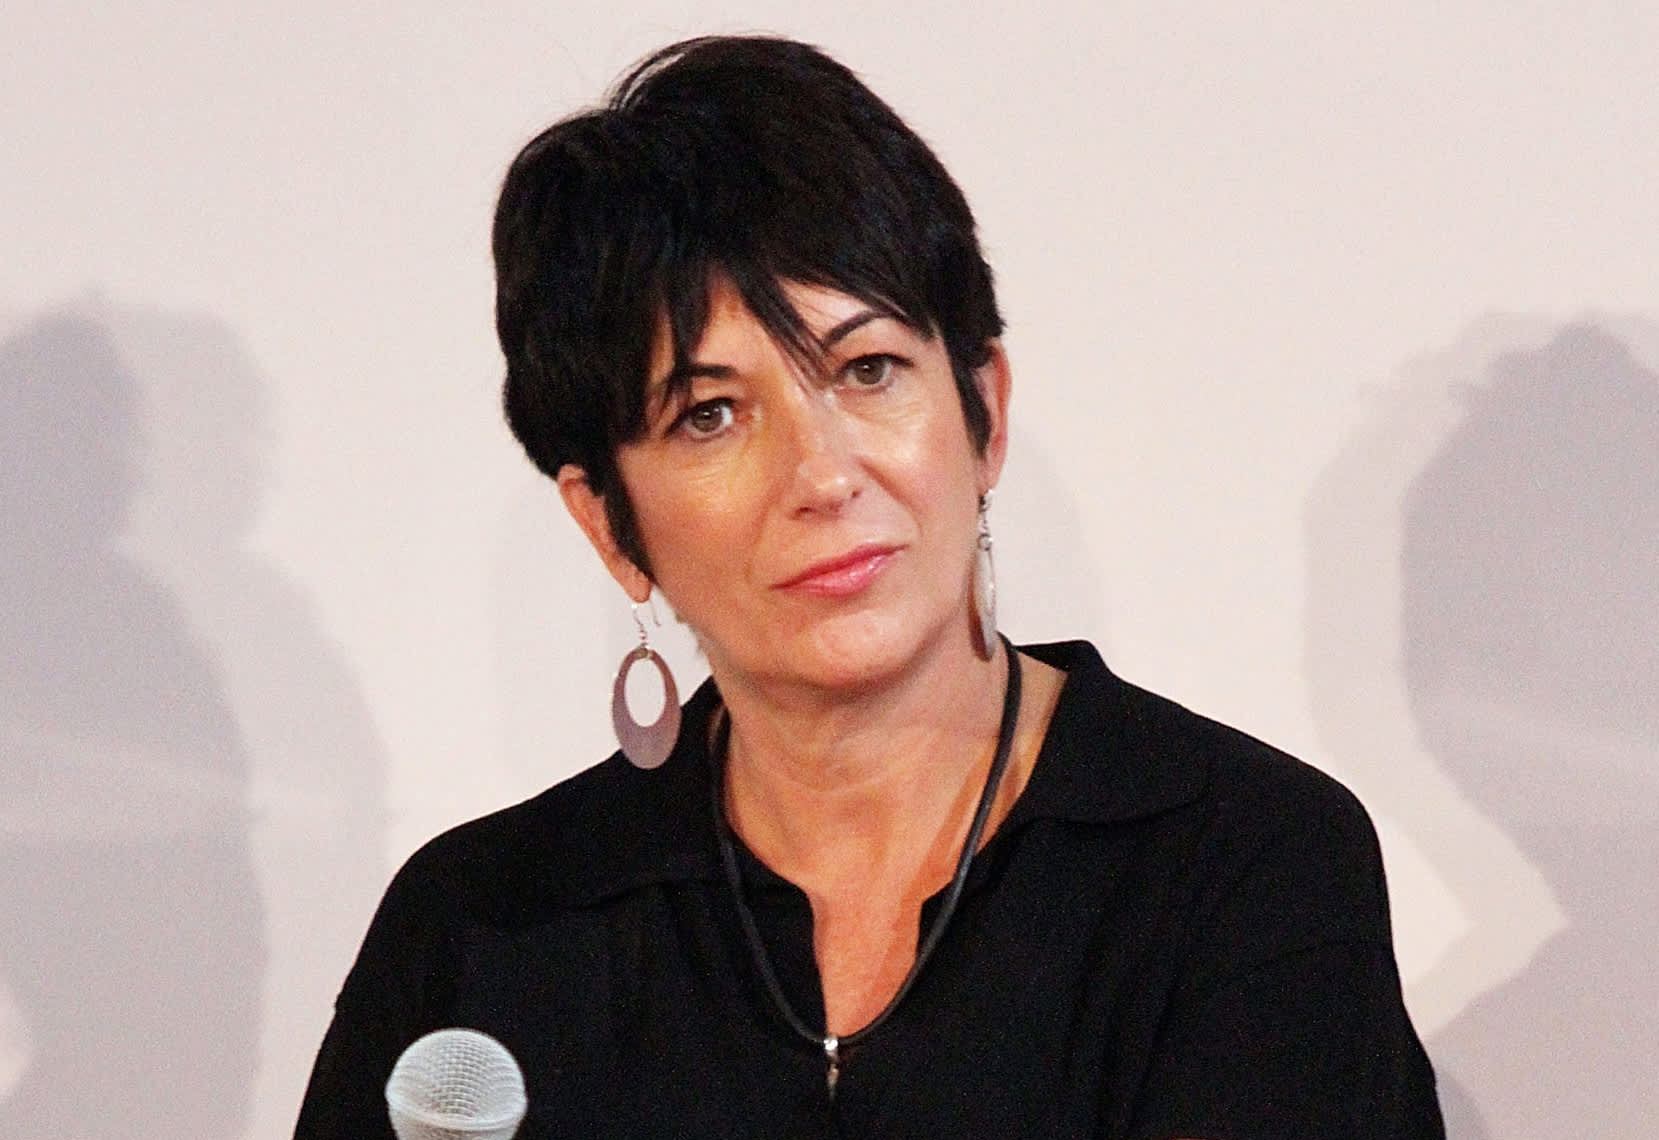 Judge sends Ghislaine Maxwell to New York to face criminal child sex charges linked to Jeffrey Epstein